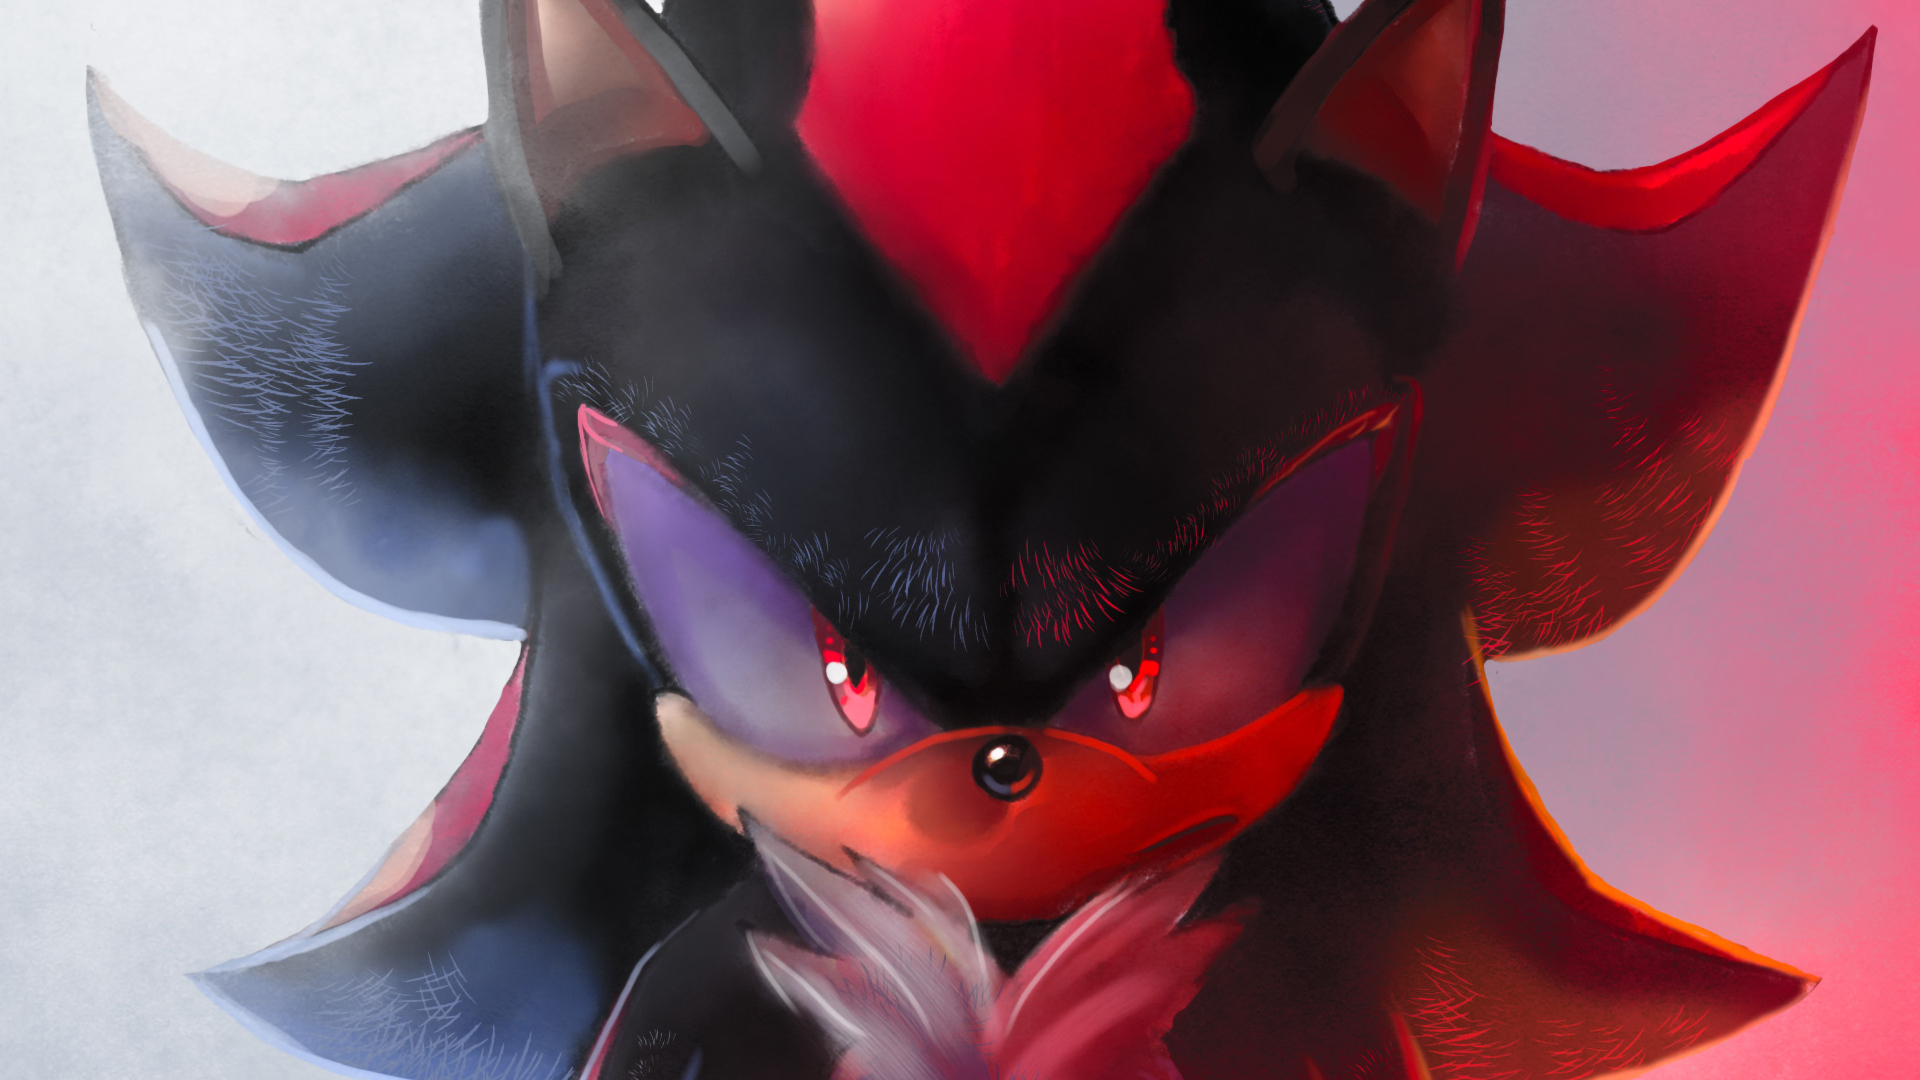 1920x1080 Evil Sonic The Hedgehog 1080p Laptop Full Hd Wallpaper Hd Movies 4k Wallpapers Images Photos And Background